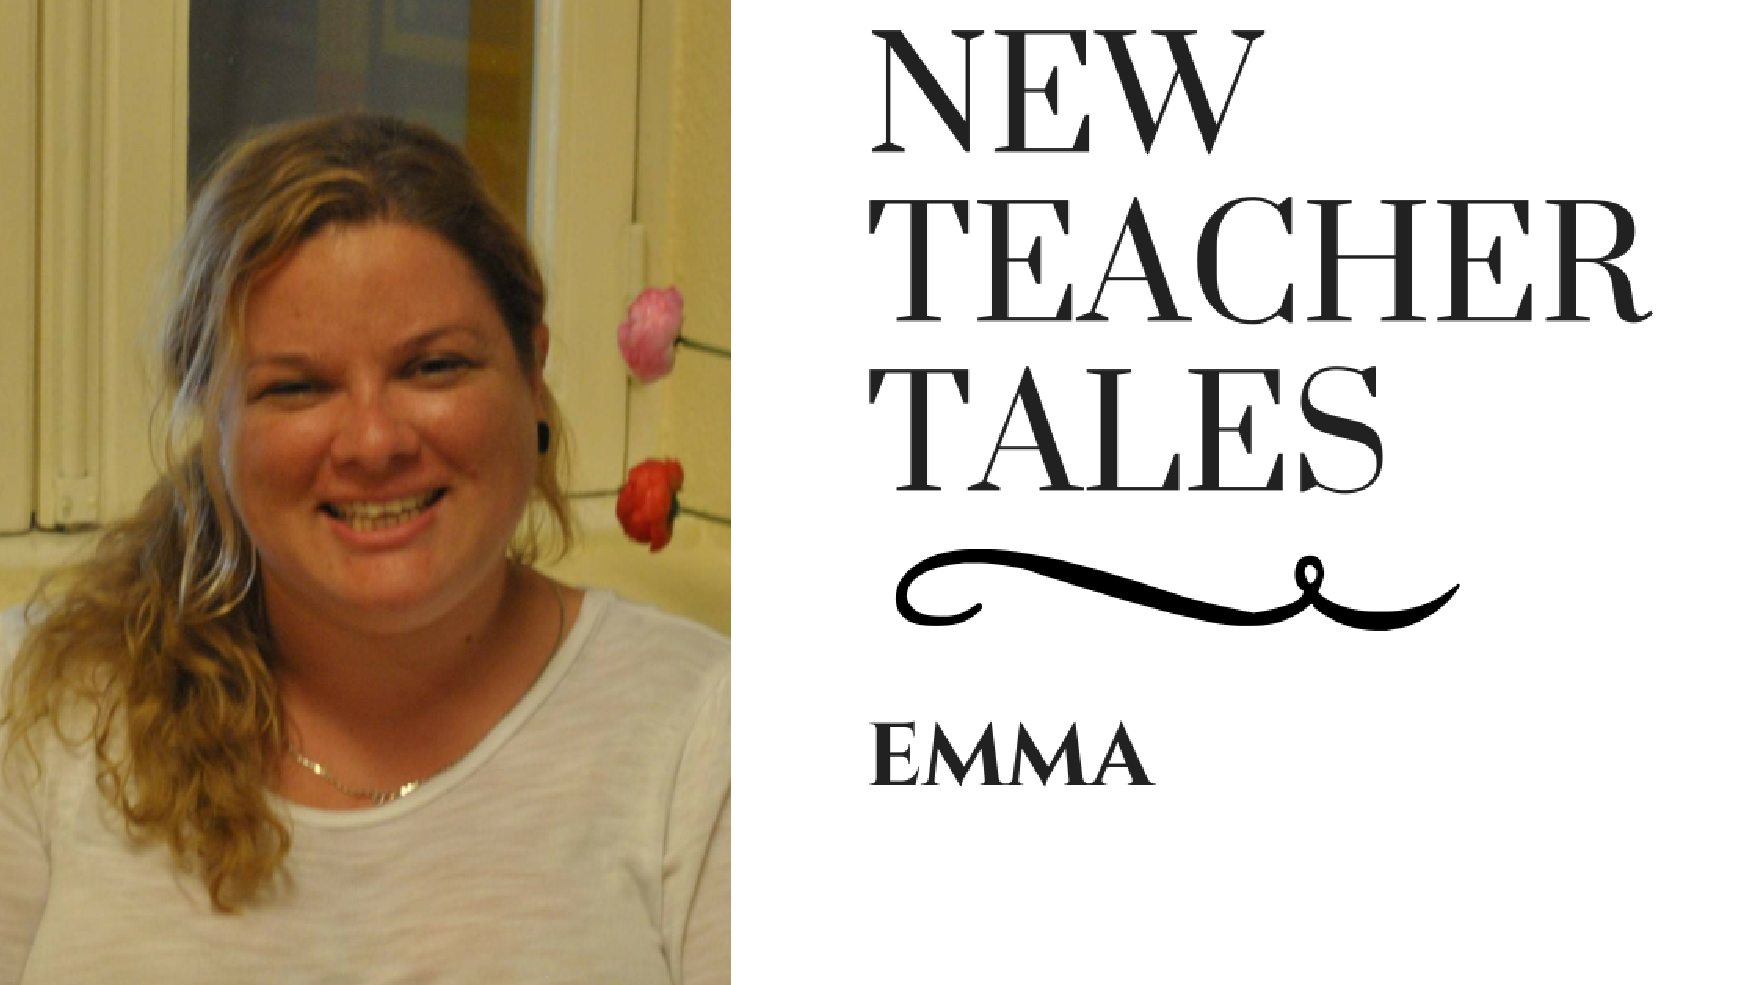 New Teacher Tales Emma TEFL Teach English